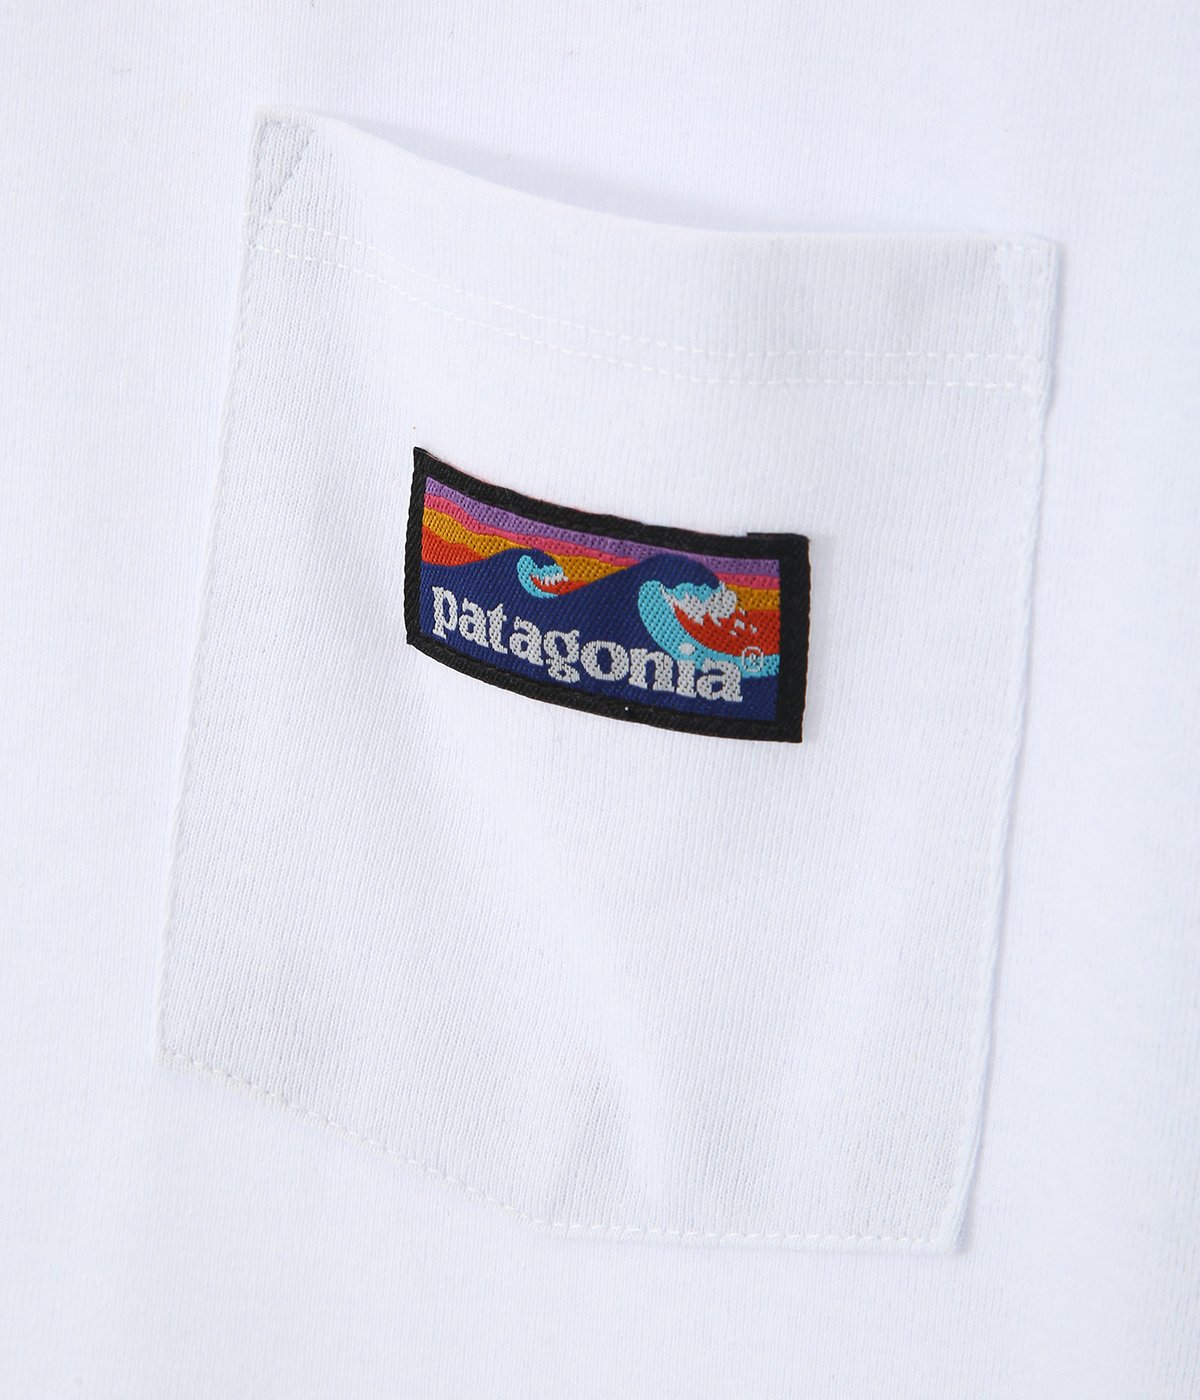 M's Boardshort Label Pocket Responsibili-Tee